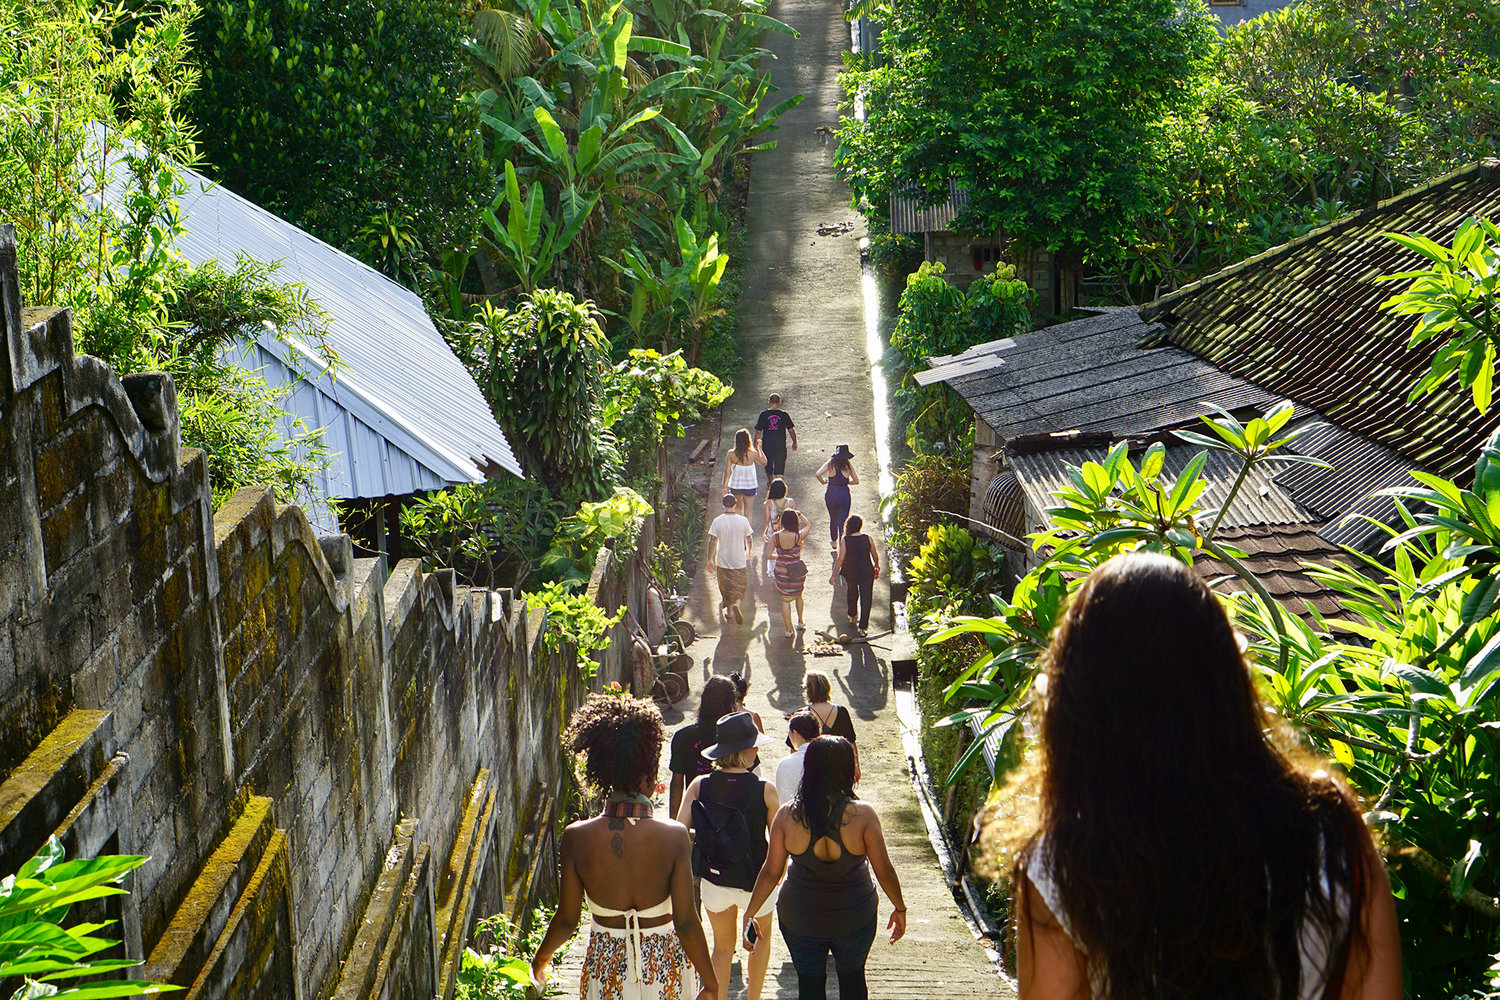 300+Hour+Bali+Yoga+Teacher+Training+by+Shivakali+Yoga,+a+Los+Angeles-based+Yoga+Certification+School+that+leads+200+&+300+Hour+Yoga+Teacher+Training+Intensives+and+Yoga+Retreats+at+sacred+destinations+in+Bali,+Hawaii,+California+and+more.jpg